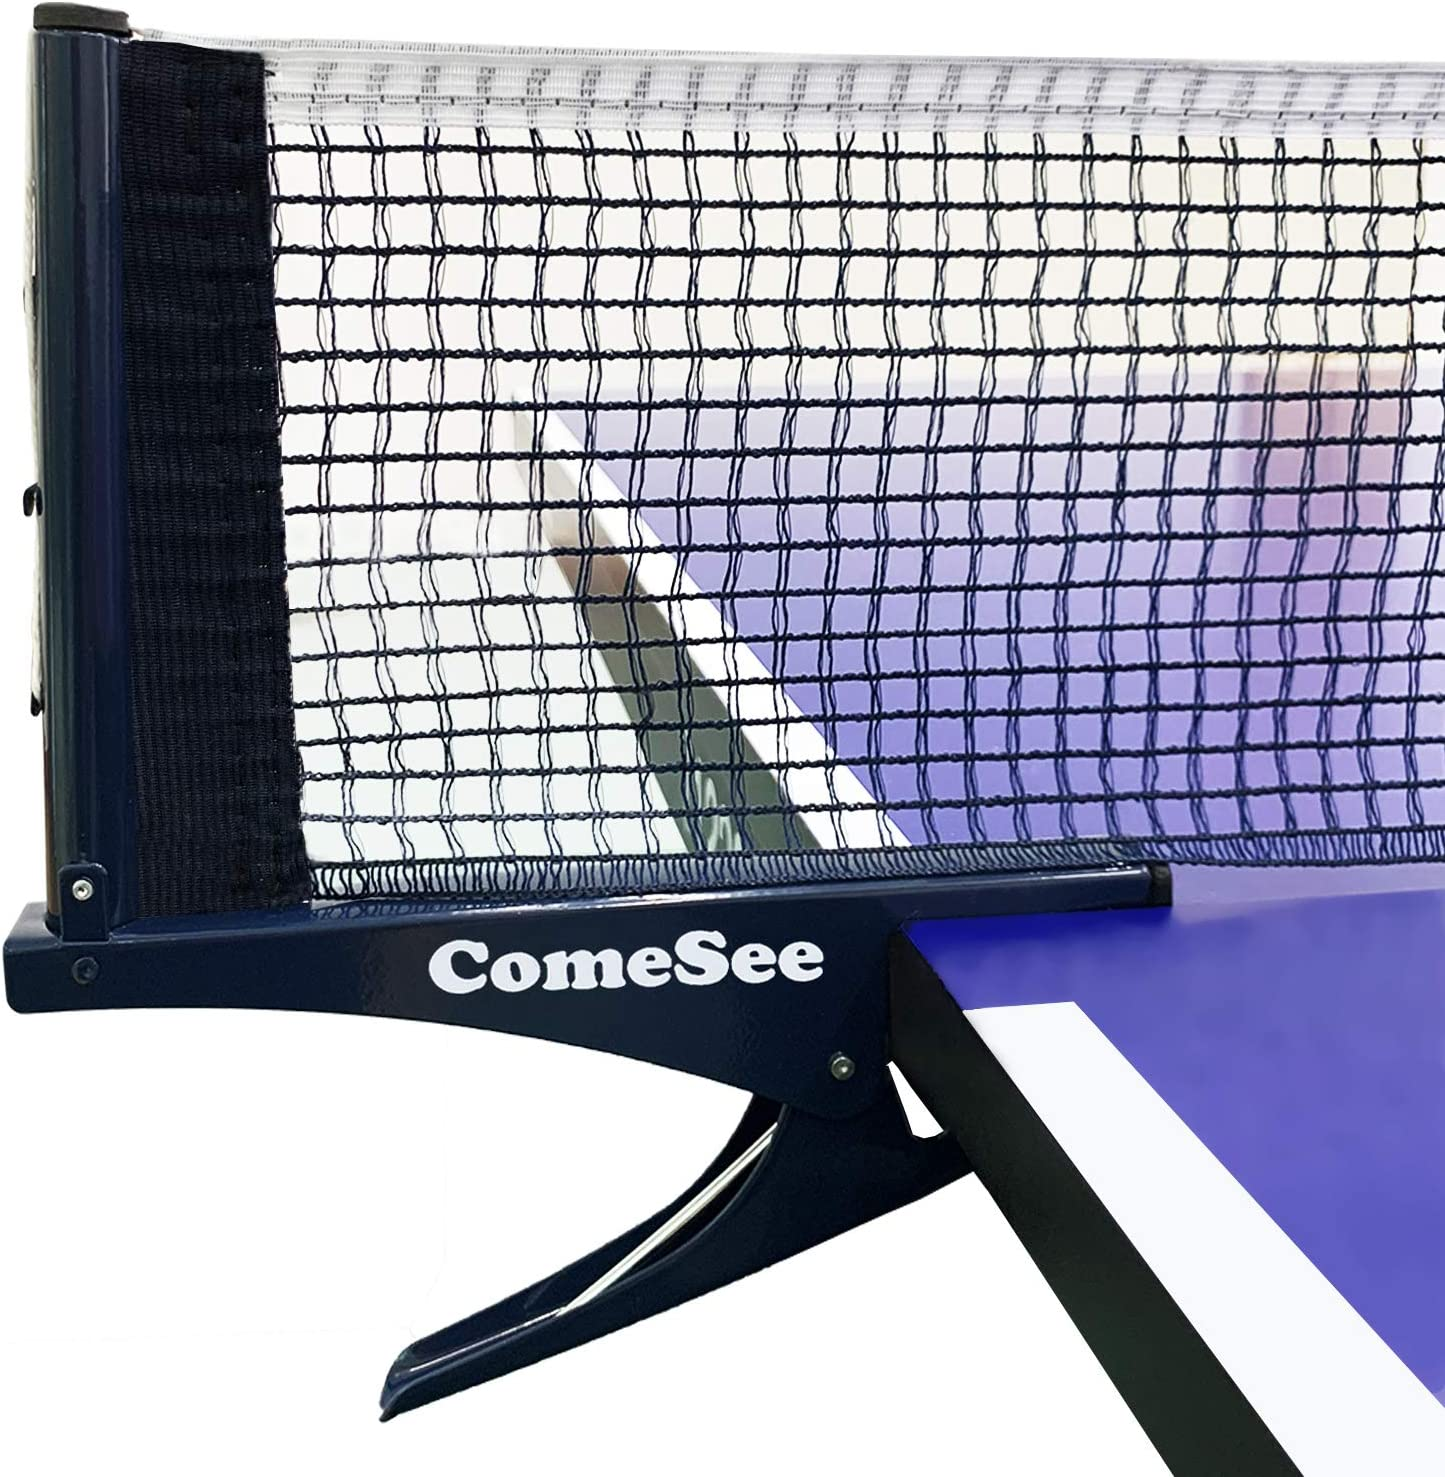 Metal Table Tennis Blade Professional Table Tennis Players Training Ping Pong